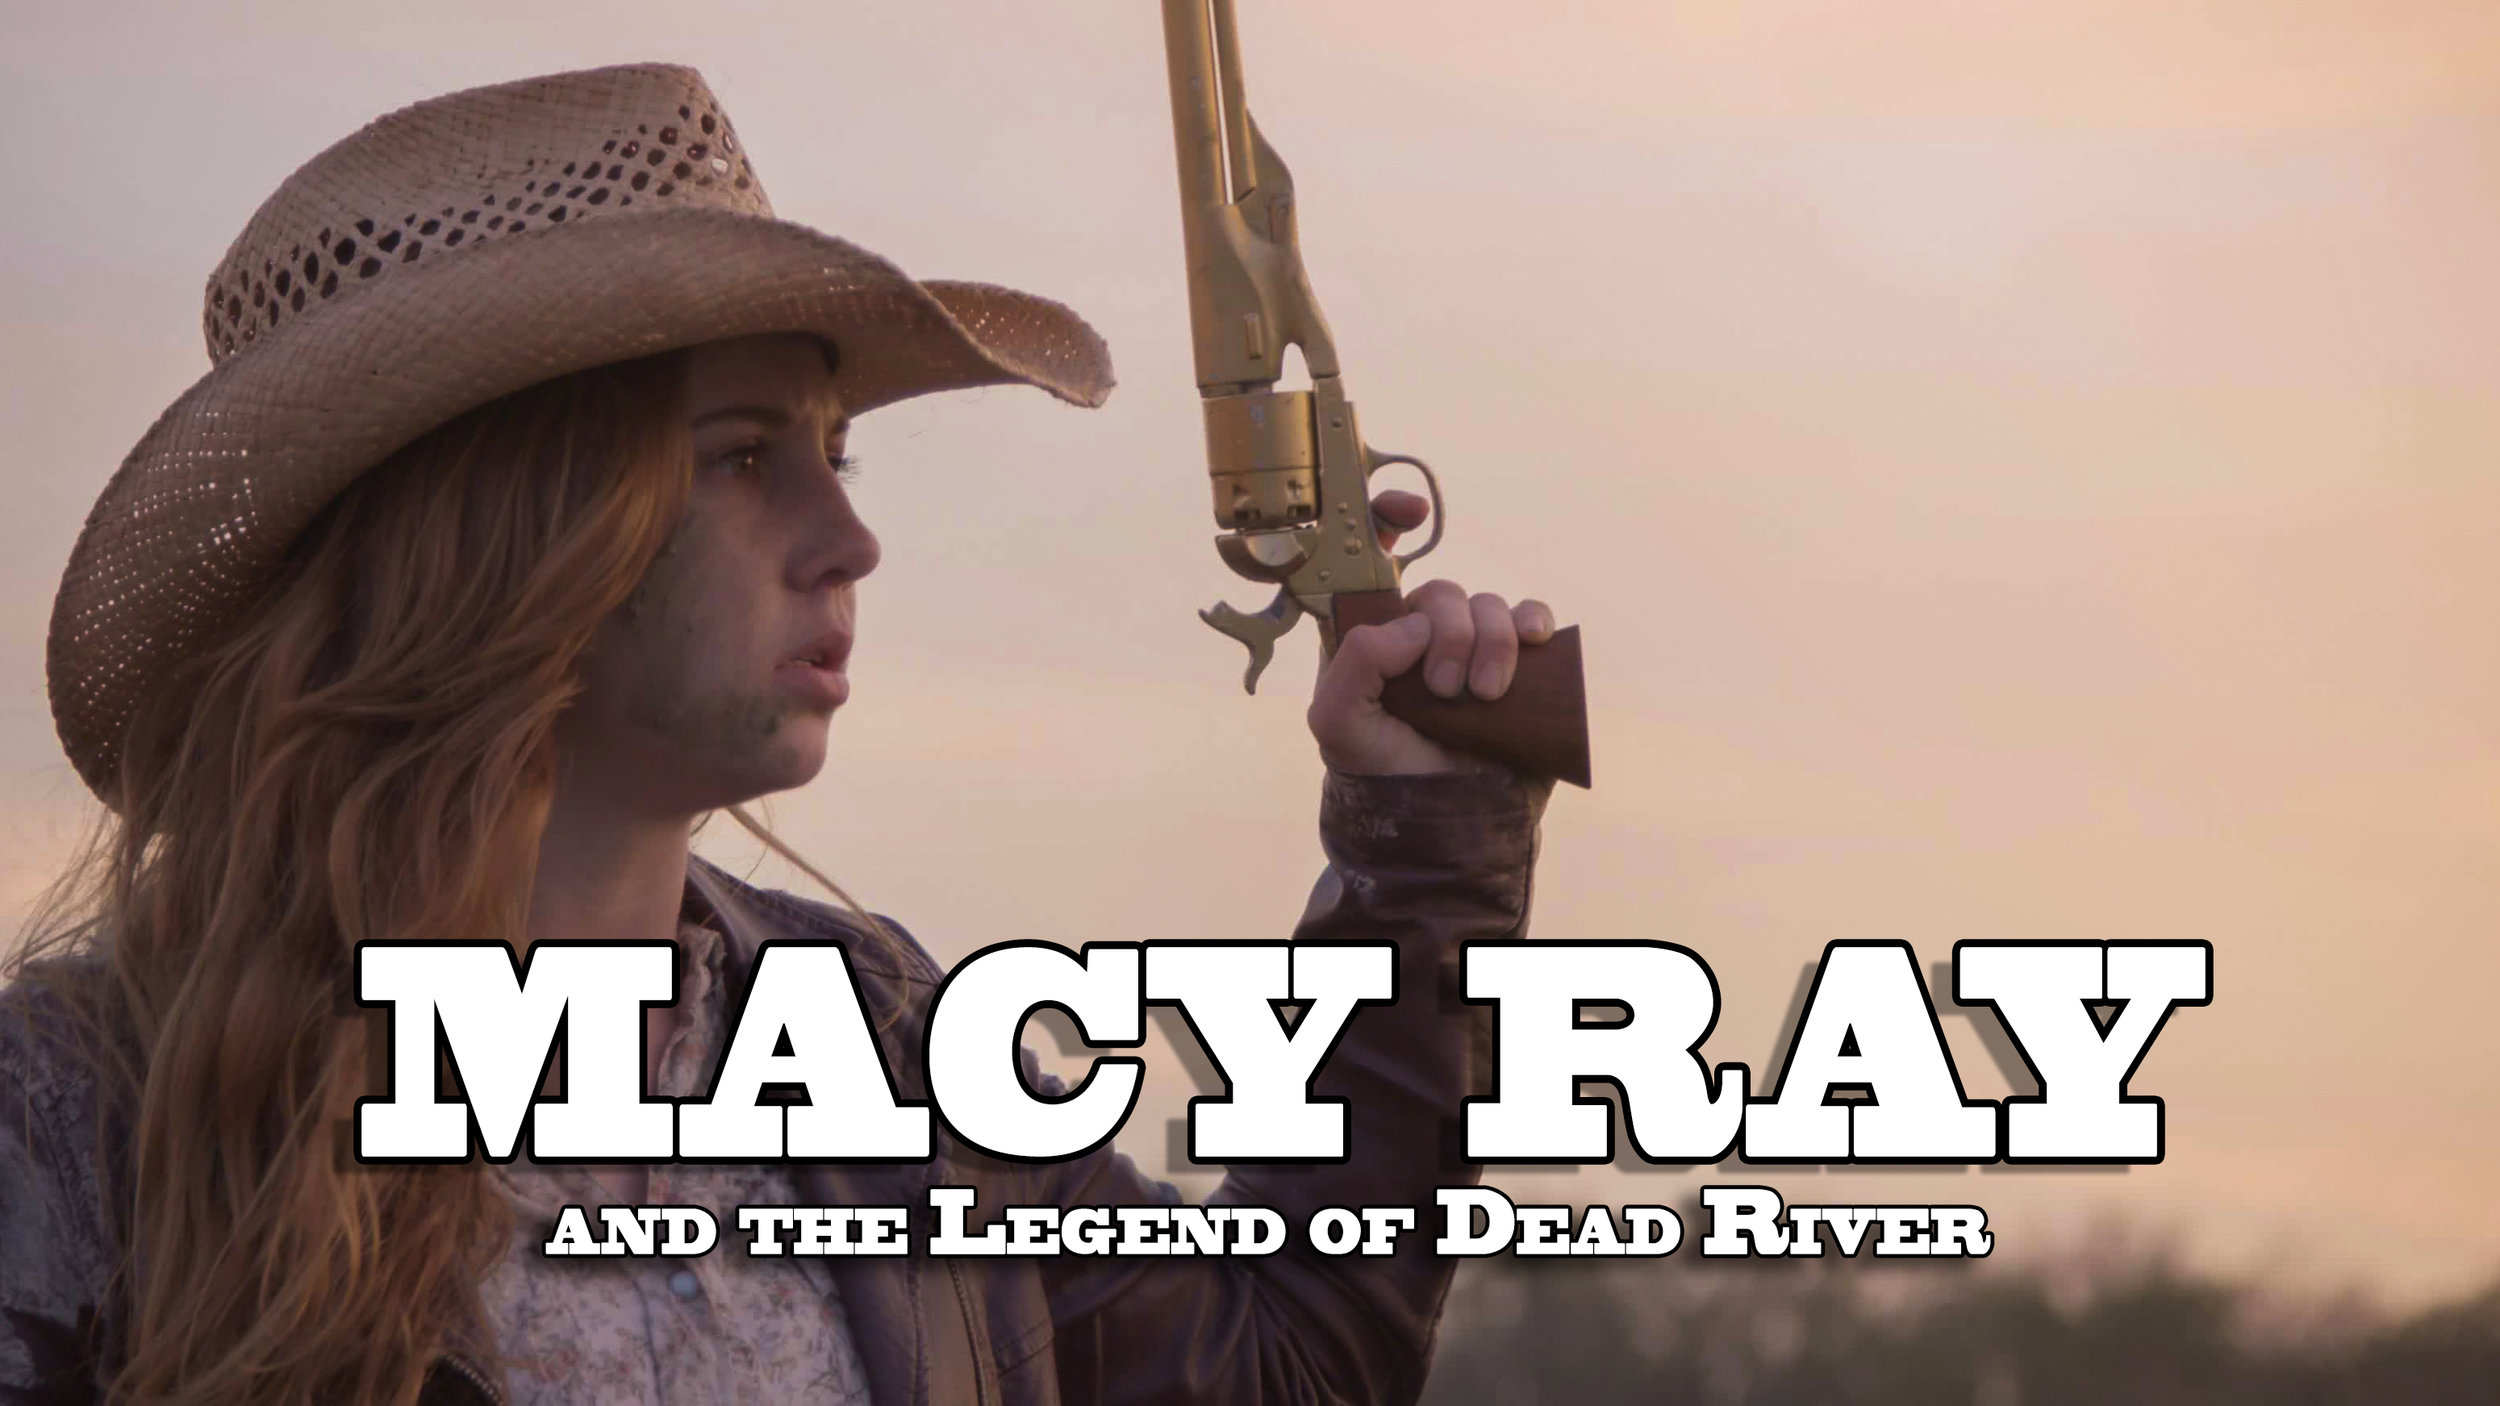 Macy Ray and the Legend of Dead River    | Independent Short Film/Spec Television Pilot |  Writer, Director, Producer, Editor